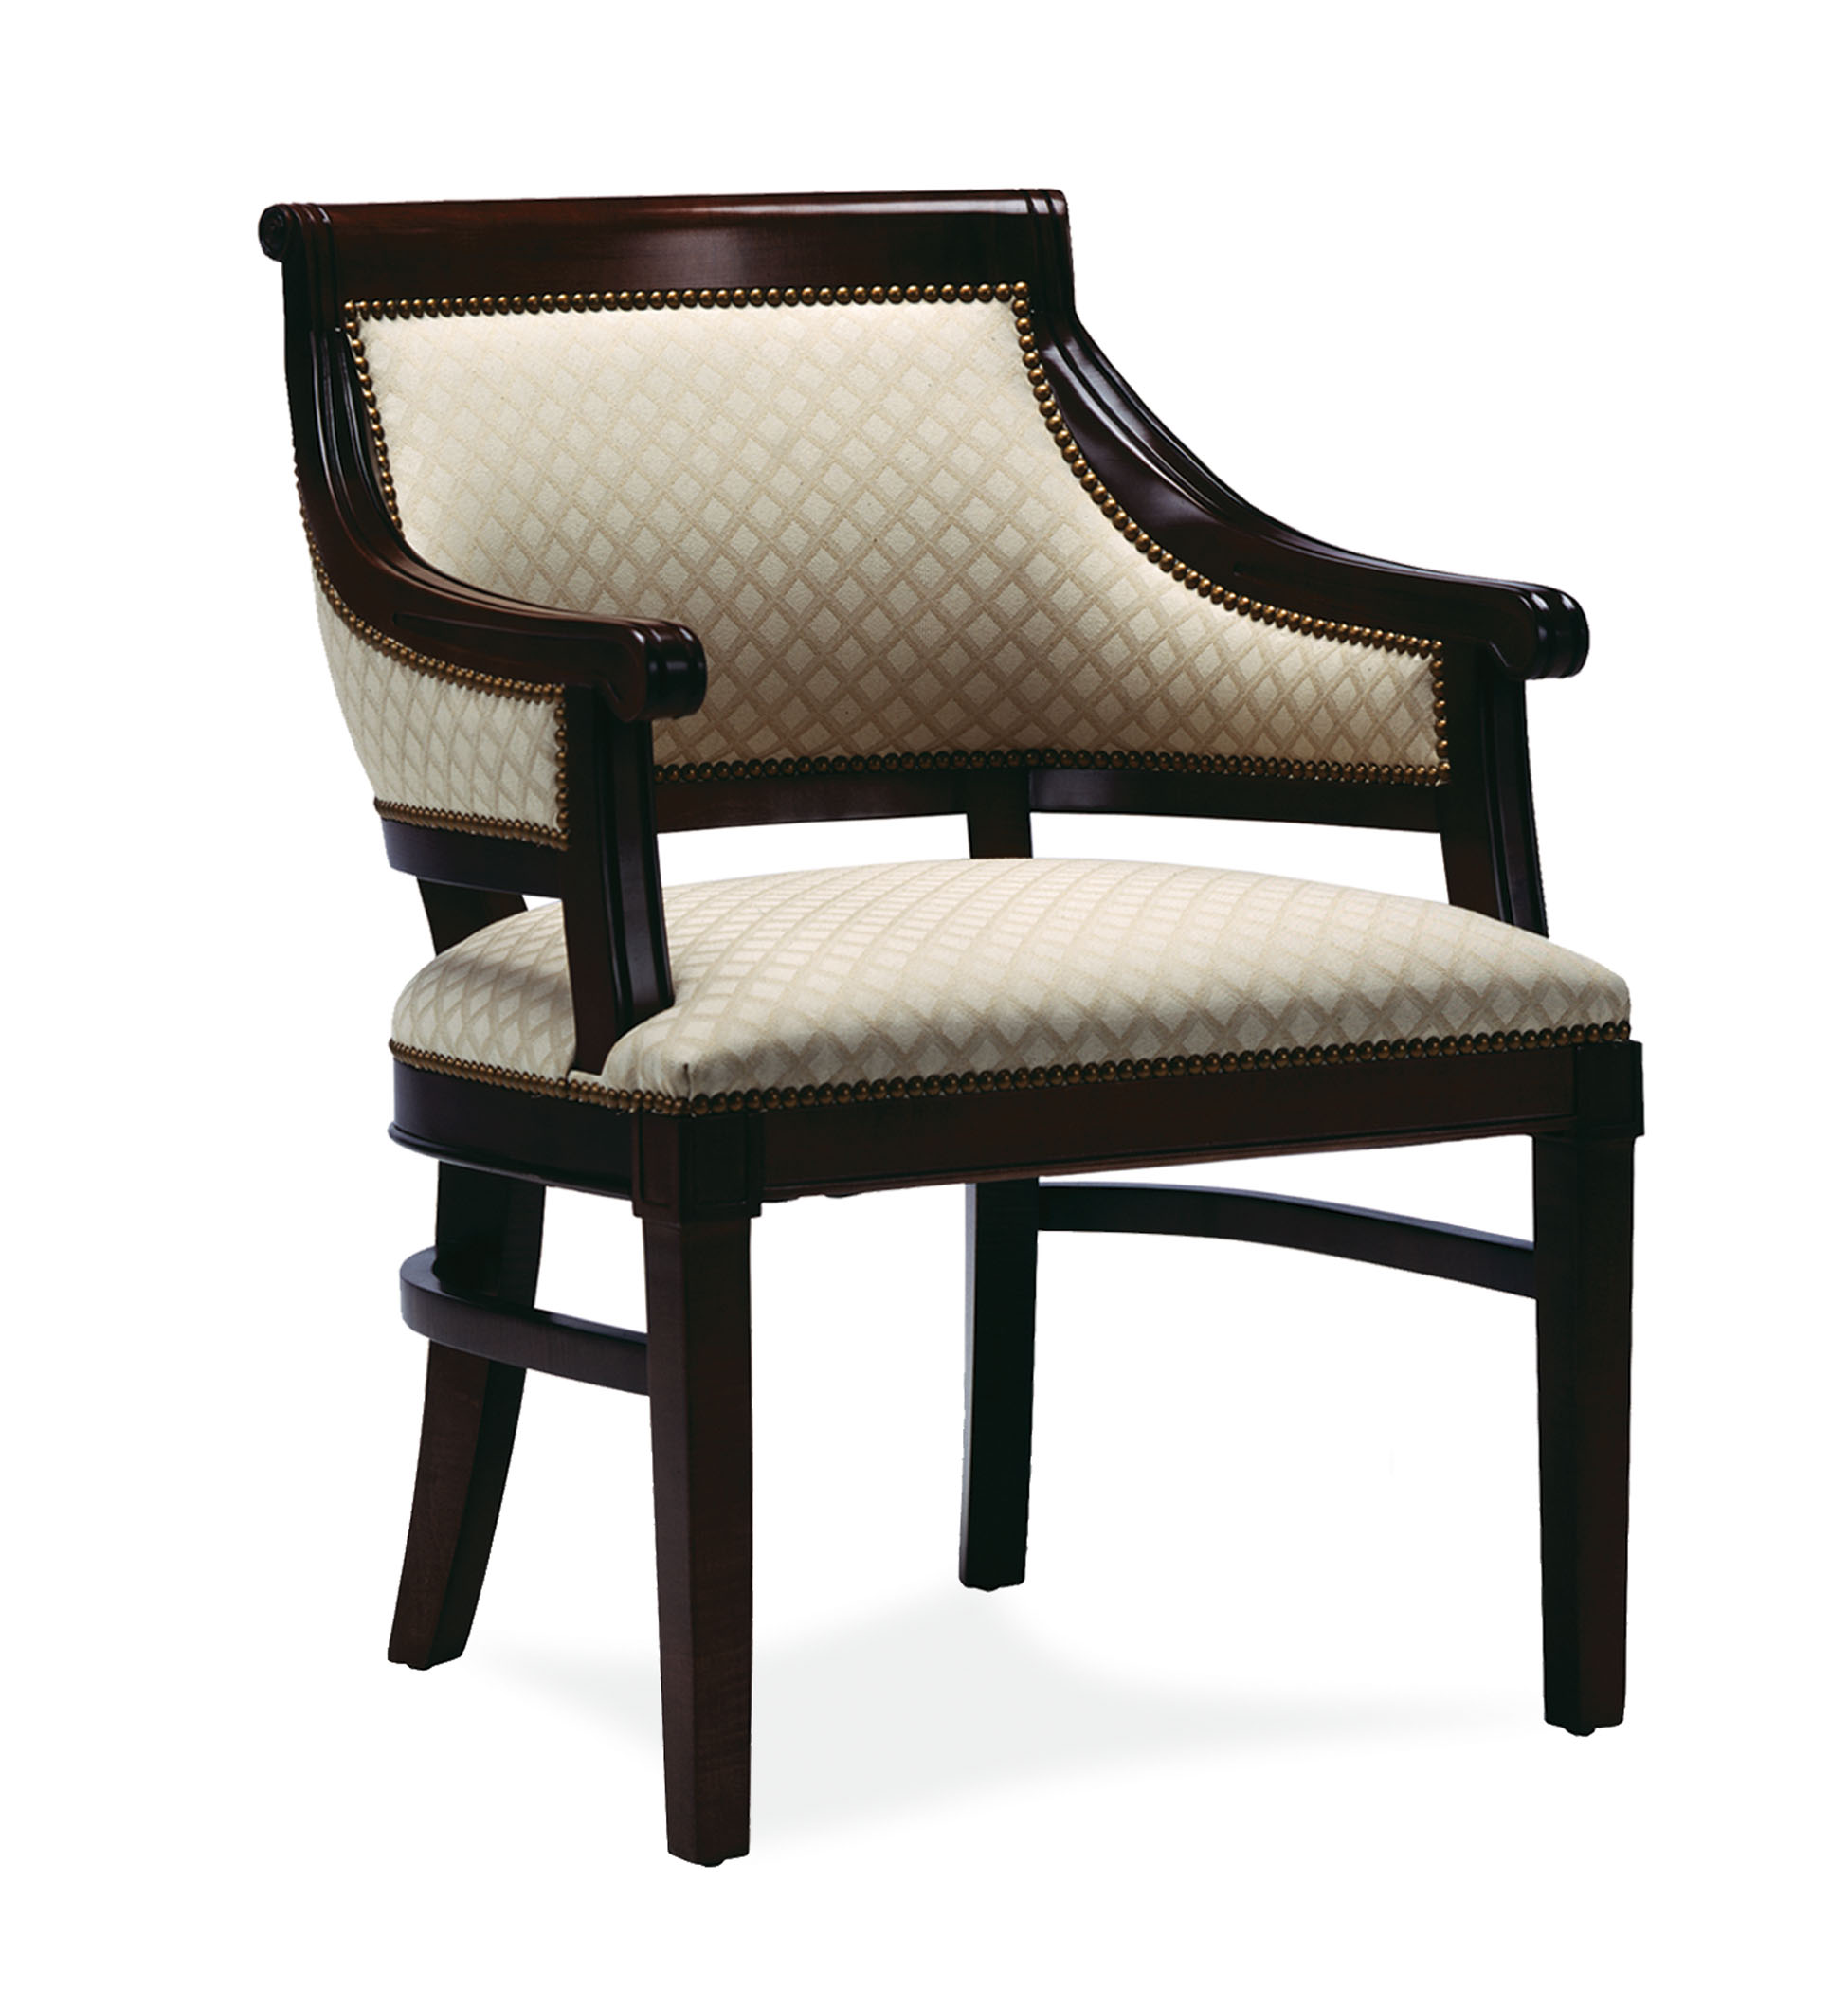 G5625 Wood Arm Chair